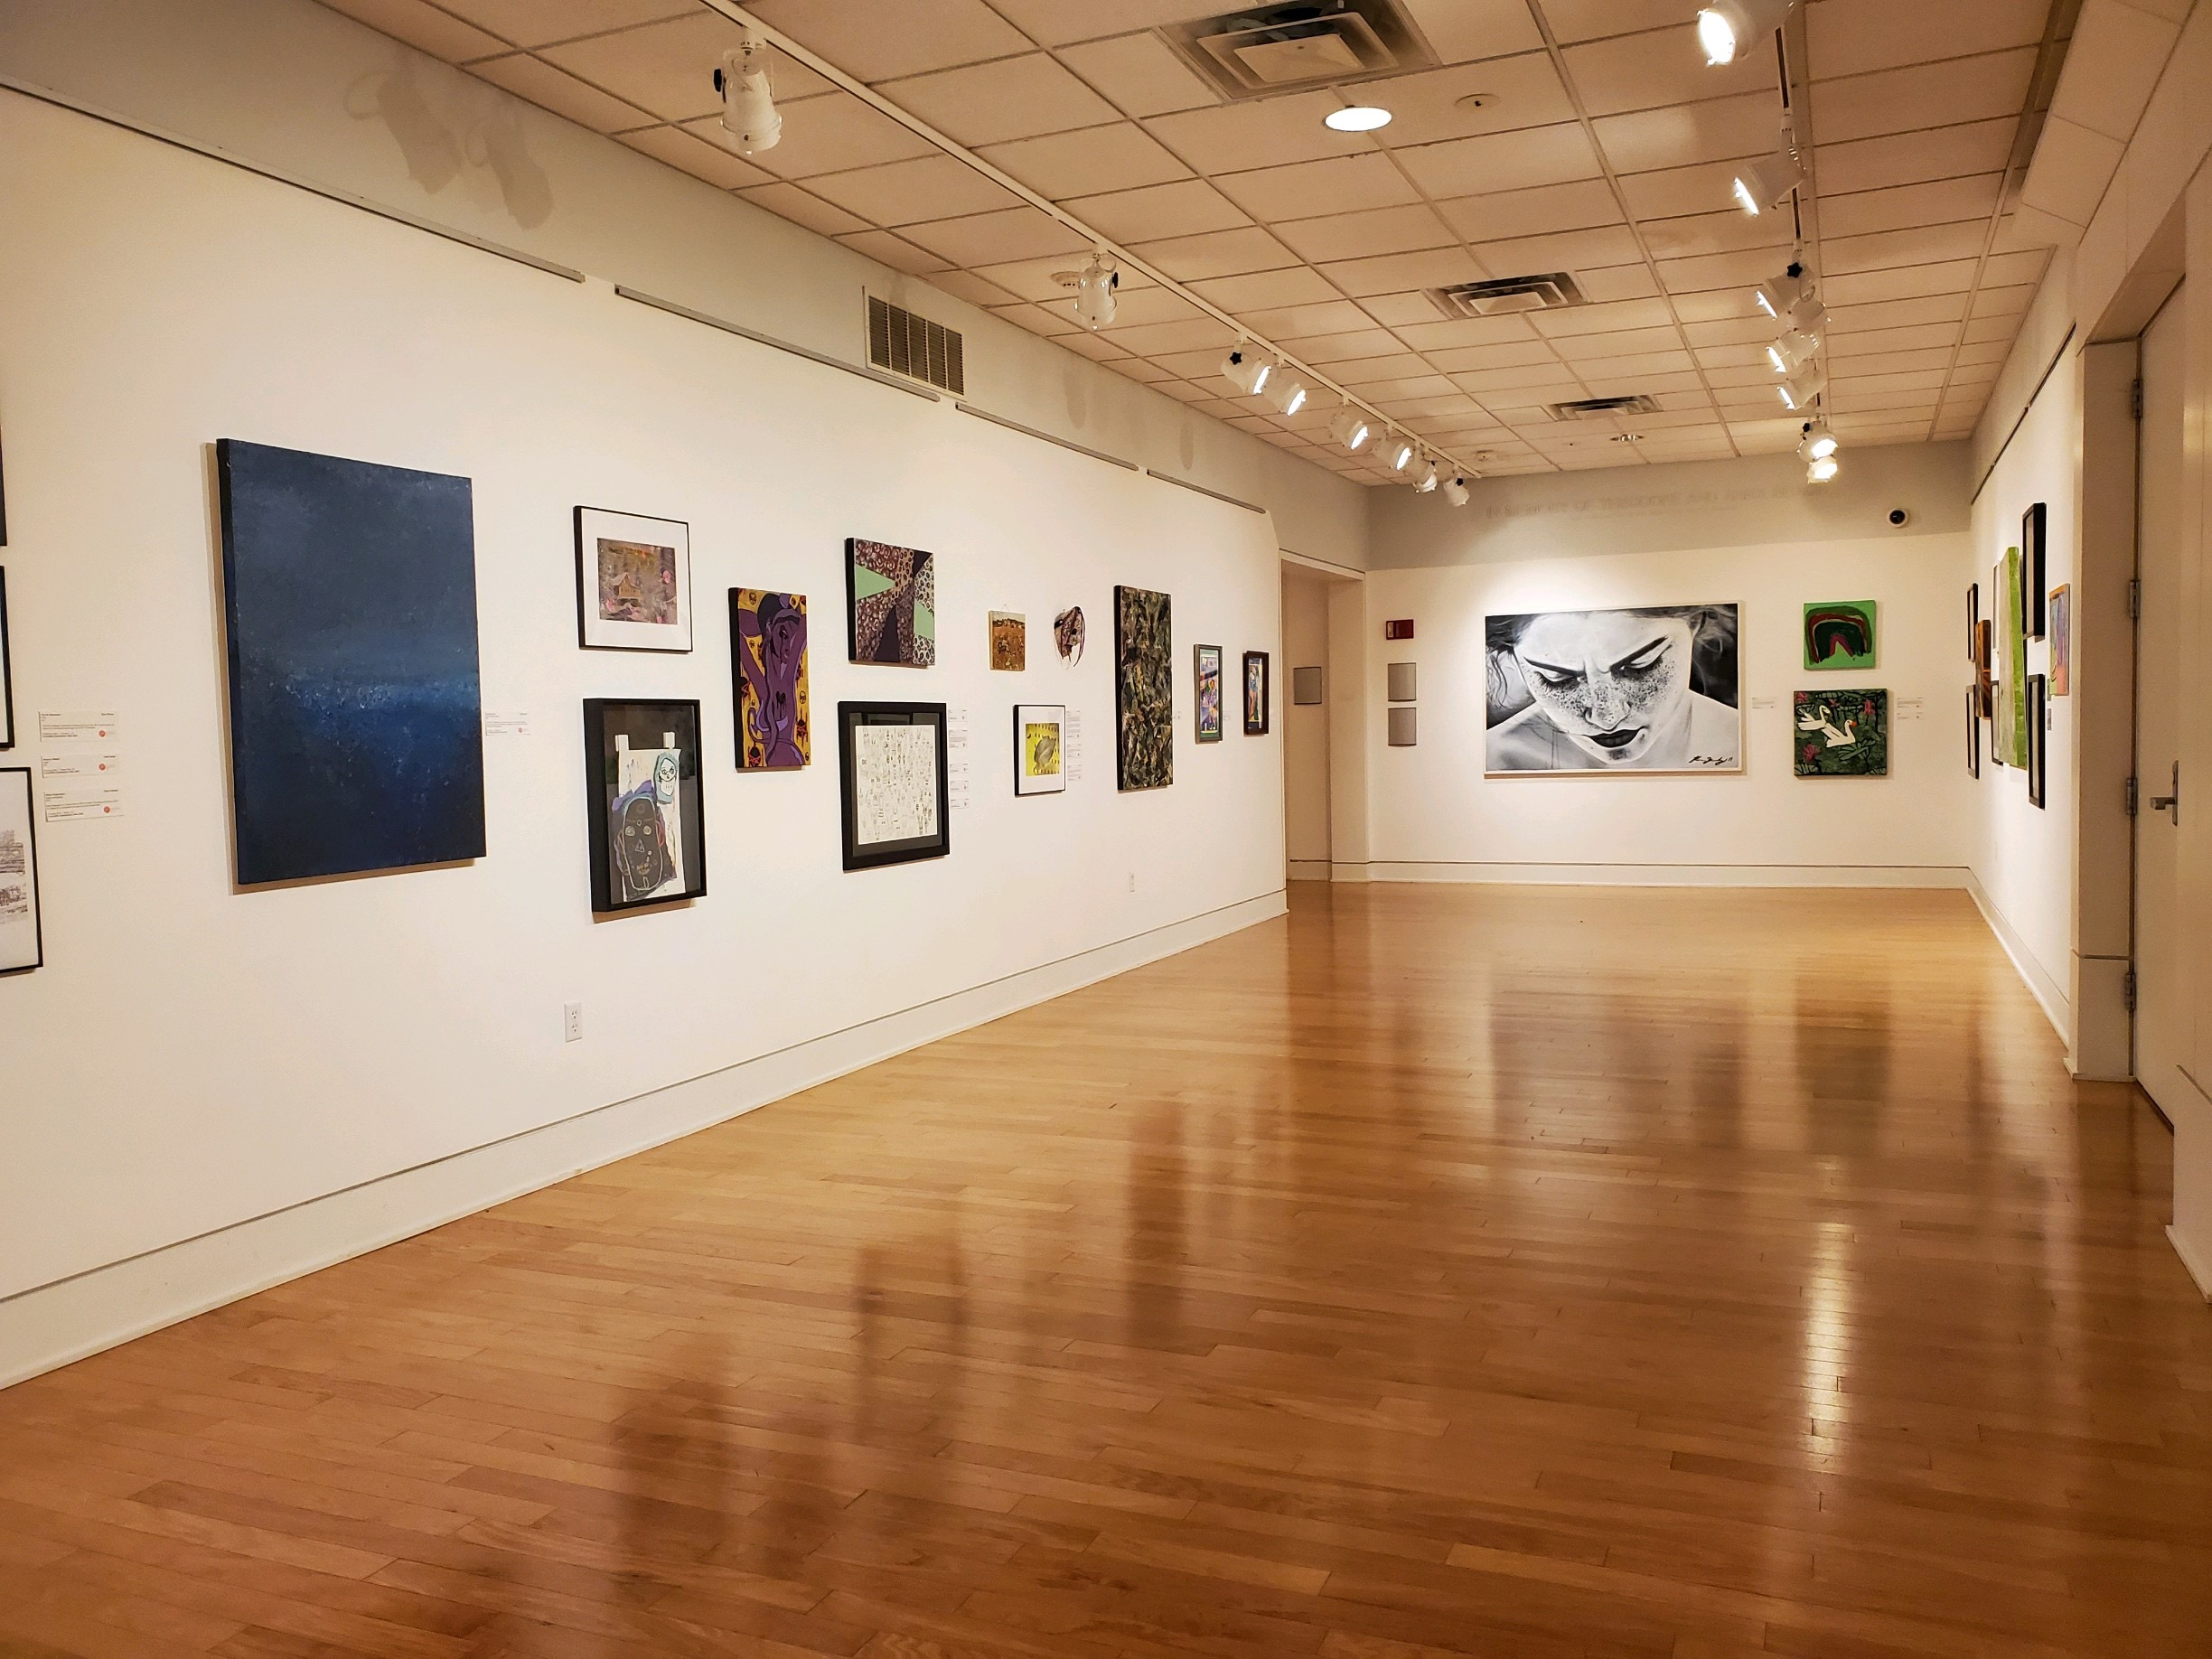 full gallery view of the 2021 accessible expressions ohio exhibition gallery has white walls and high gloss hardwood floors